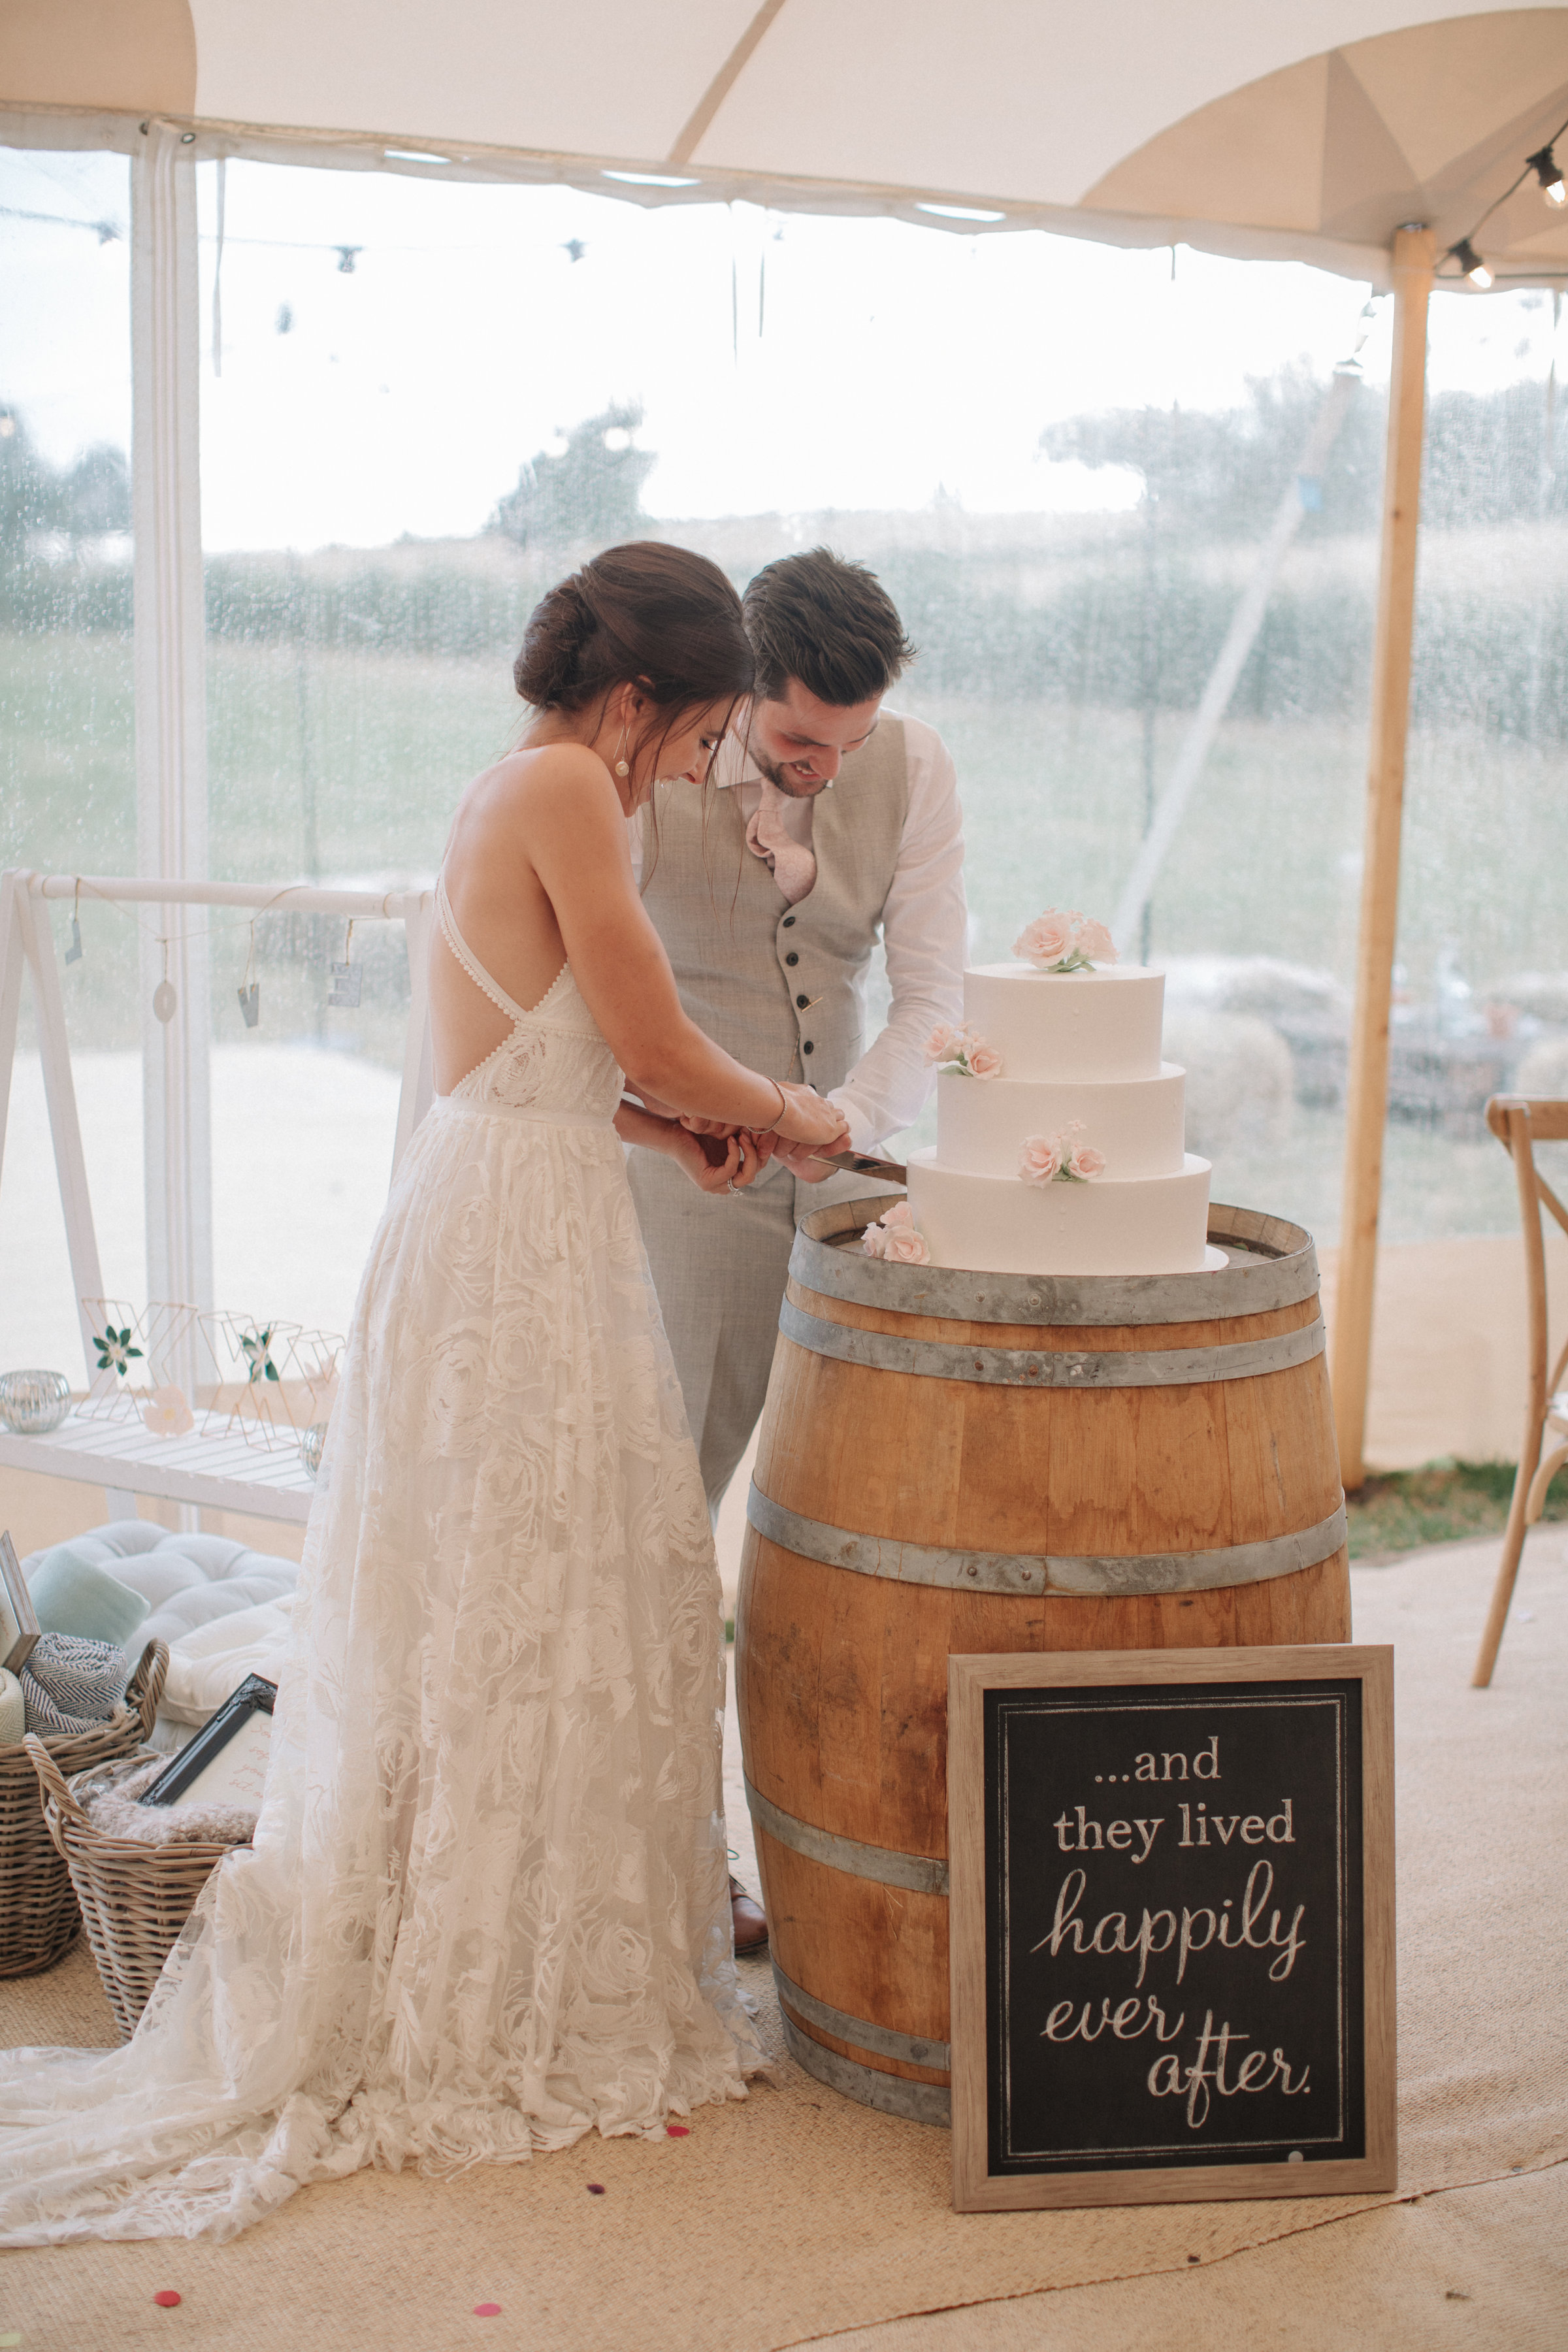 Steph & Ed's PapaKåta Sperry Tent wedding at home in Nottingham captured by M & J Photography: Cutting the Cake